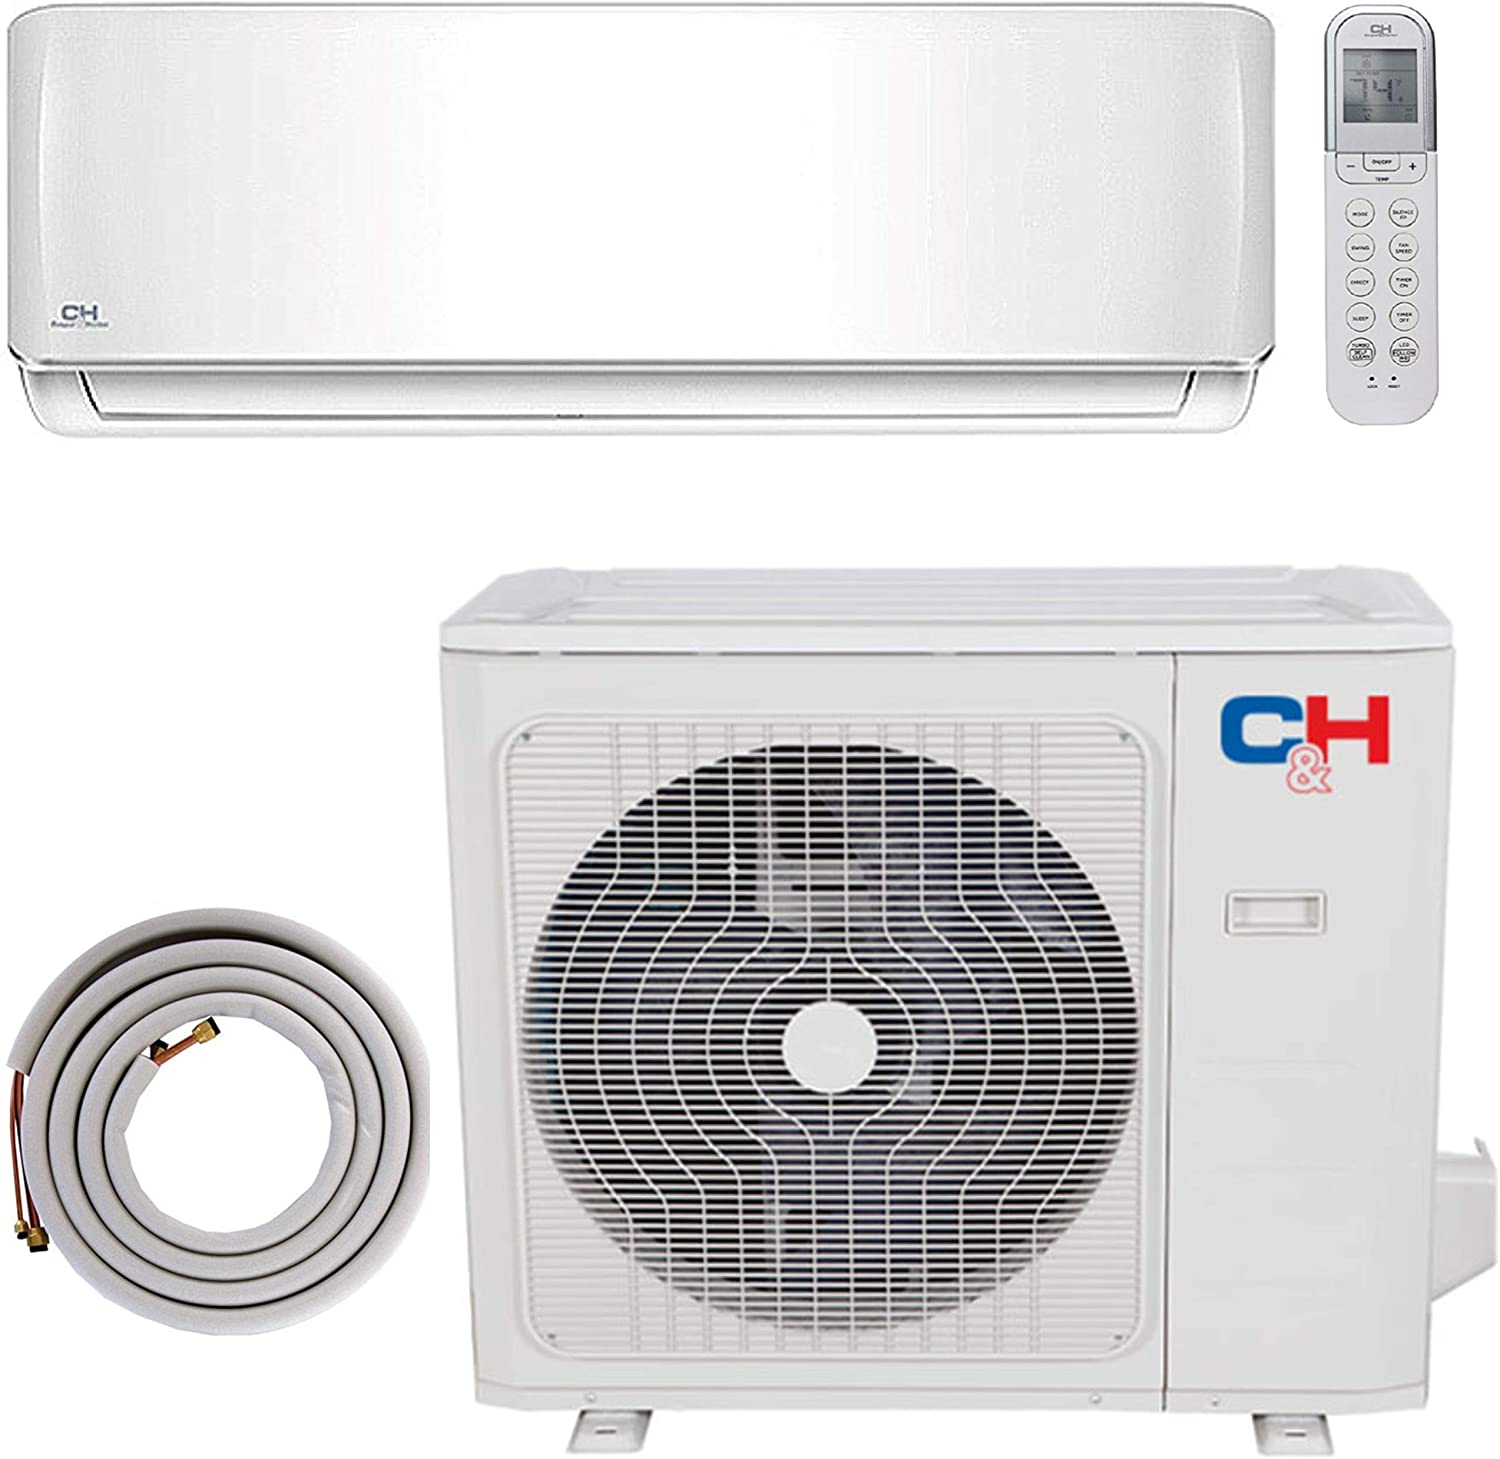 COOPER AND HUNTER 12000 BTU Ductless Mini Split Heat Pump Air Conditioner 115V